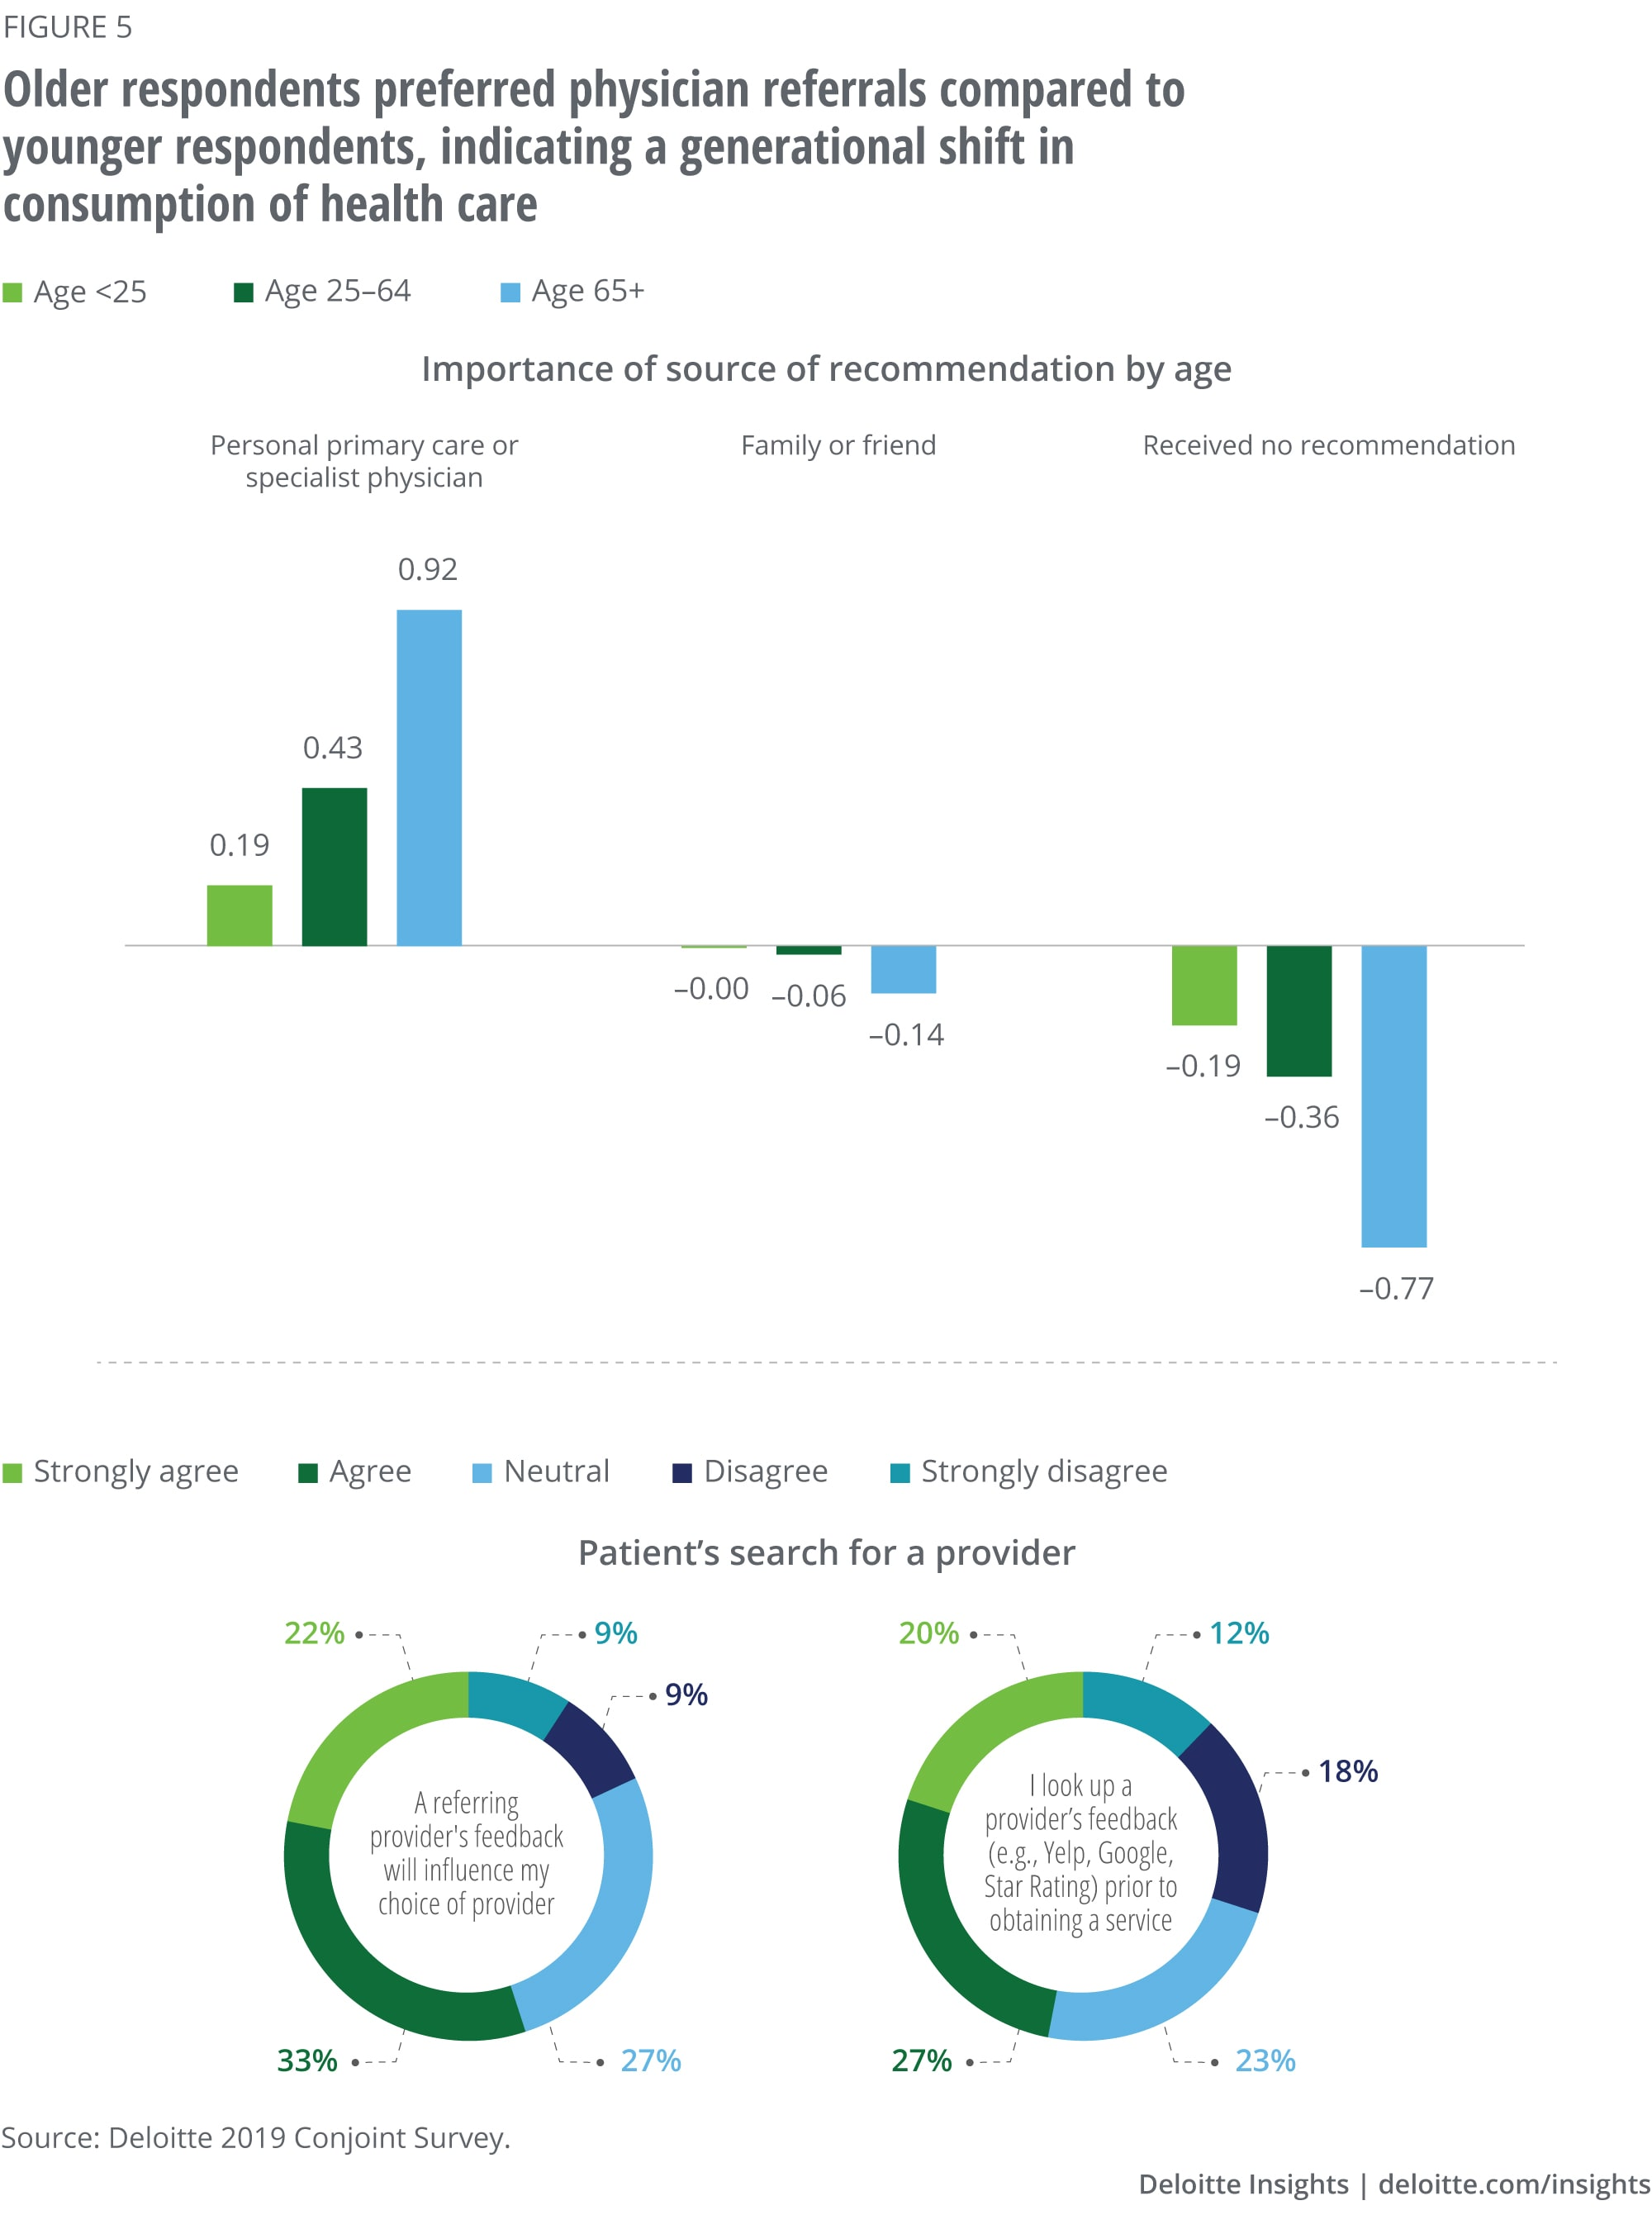 Older respondents preferred physician referrals compared to younger respondents, indicating a generational shift in consumption of health care